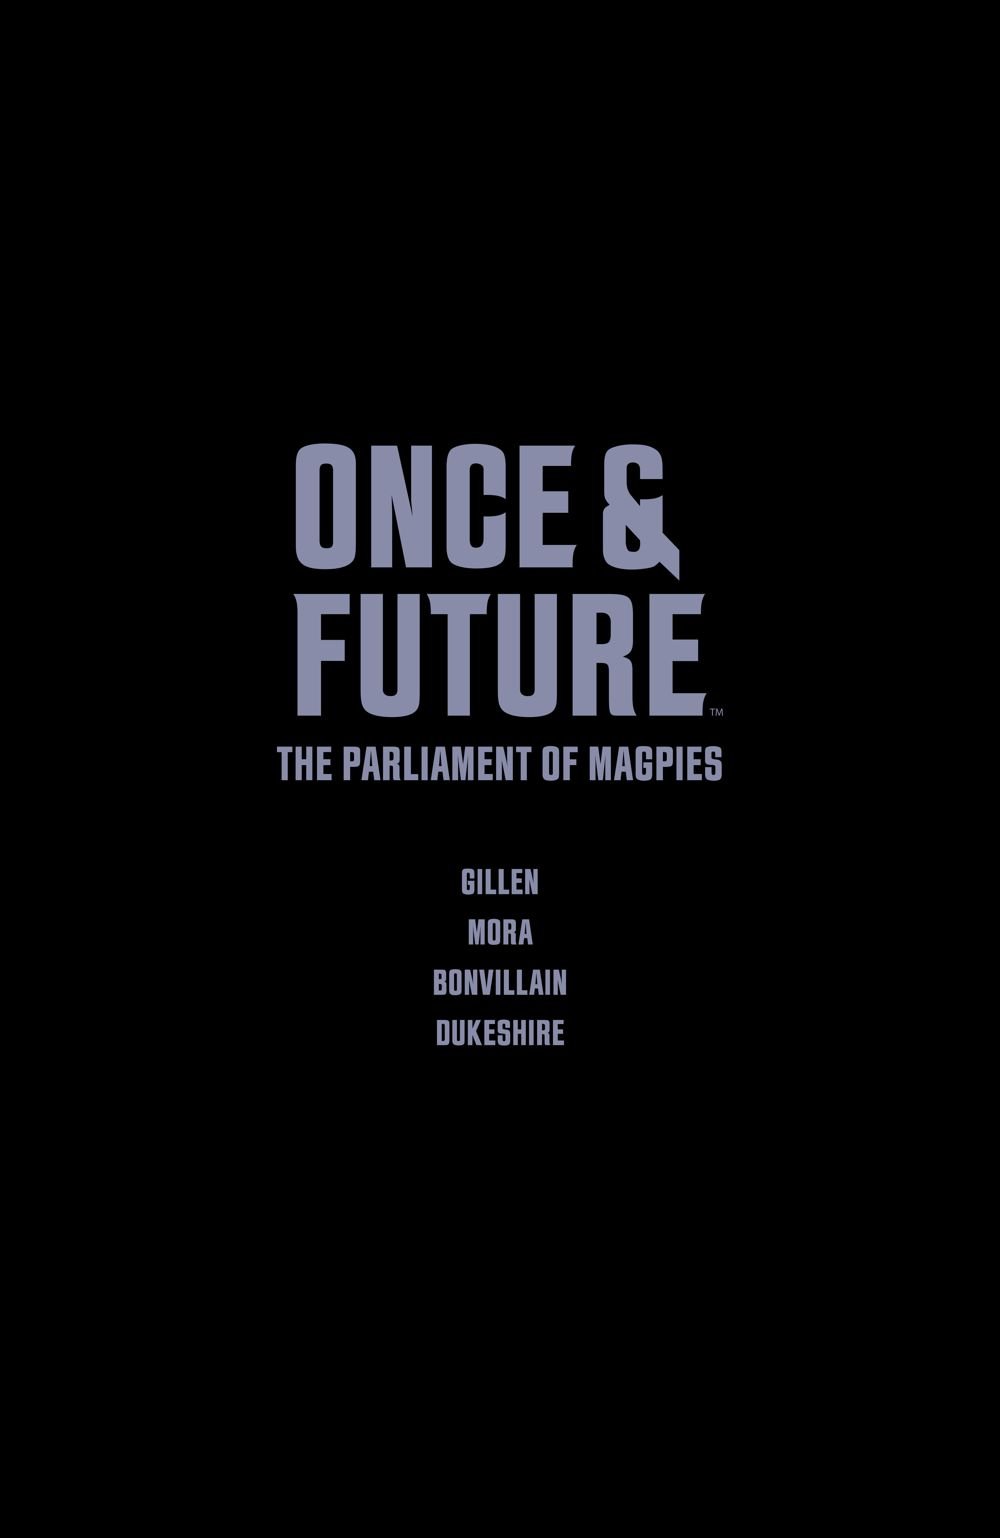 OnceFuture_v3_SC_PRESS_12 ComicList Previews: ONCE AND FUTURE VOLUME 3 THE PARLIAMENT OF MAGPIES TP